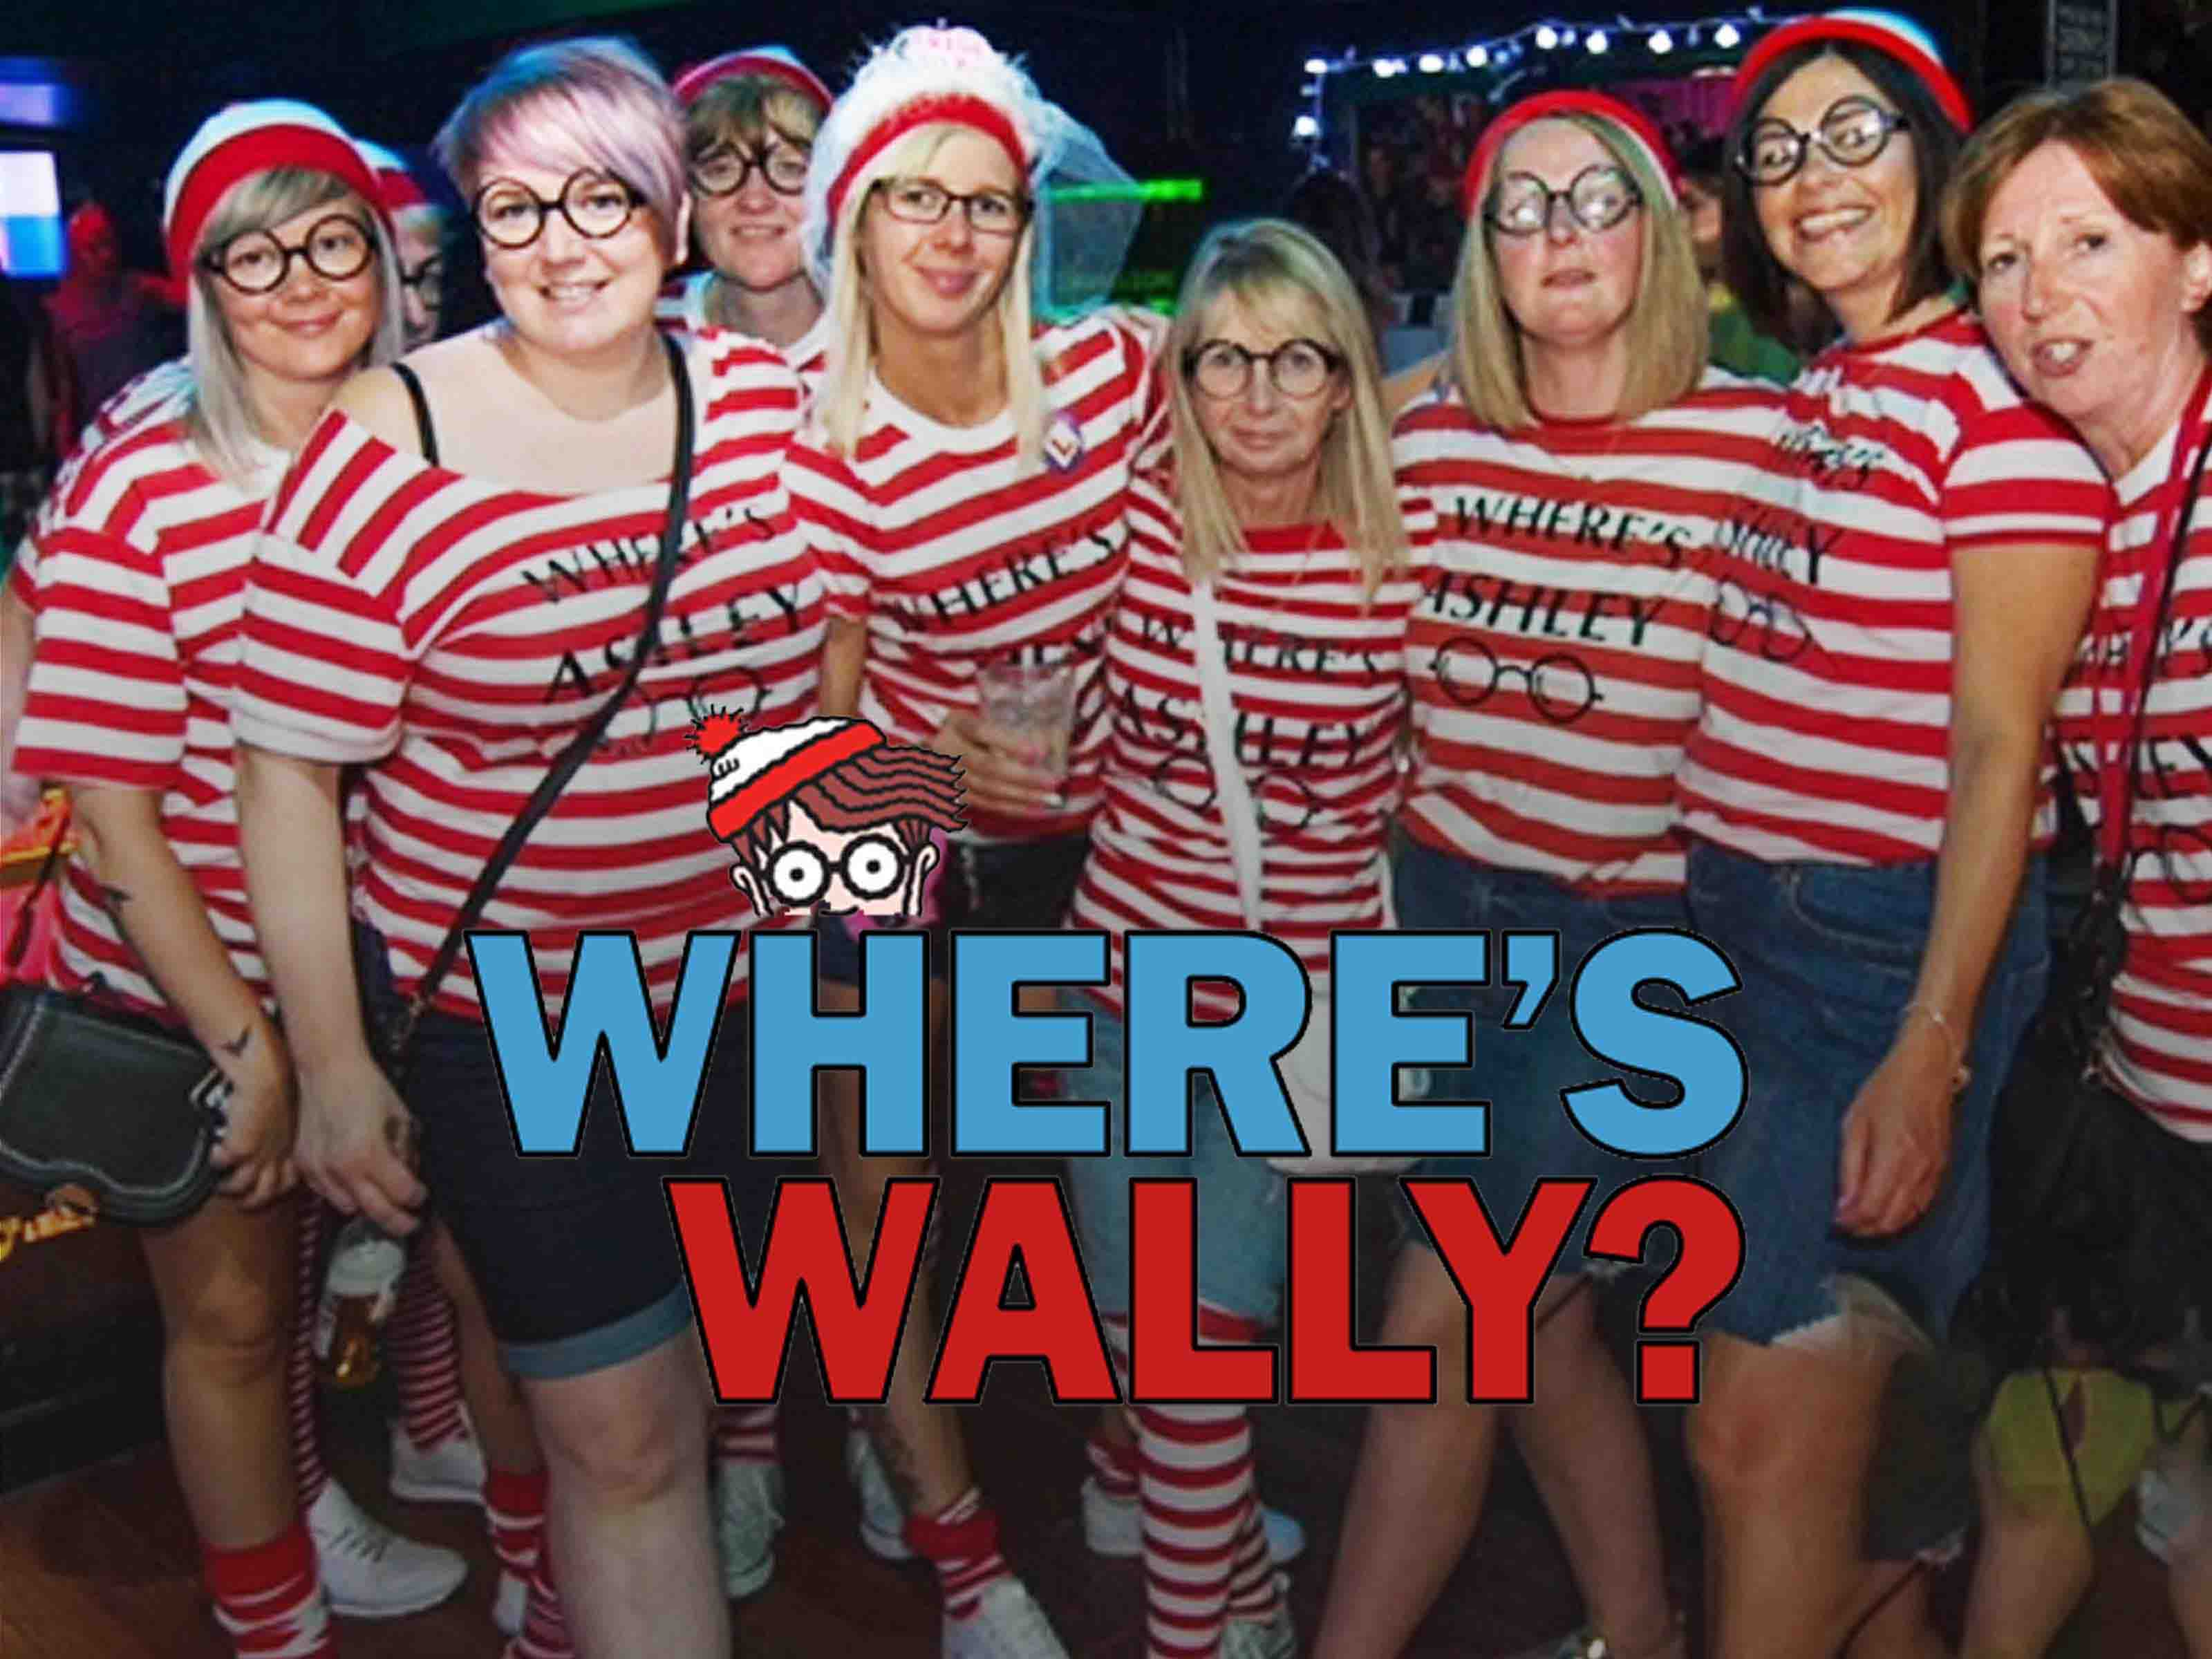 Hen Party Themes - Where's Wally